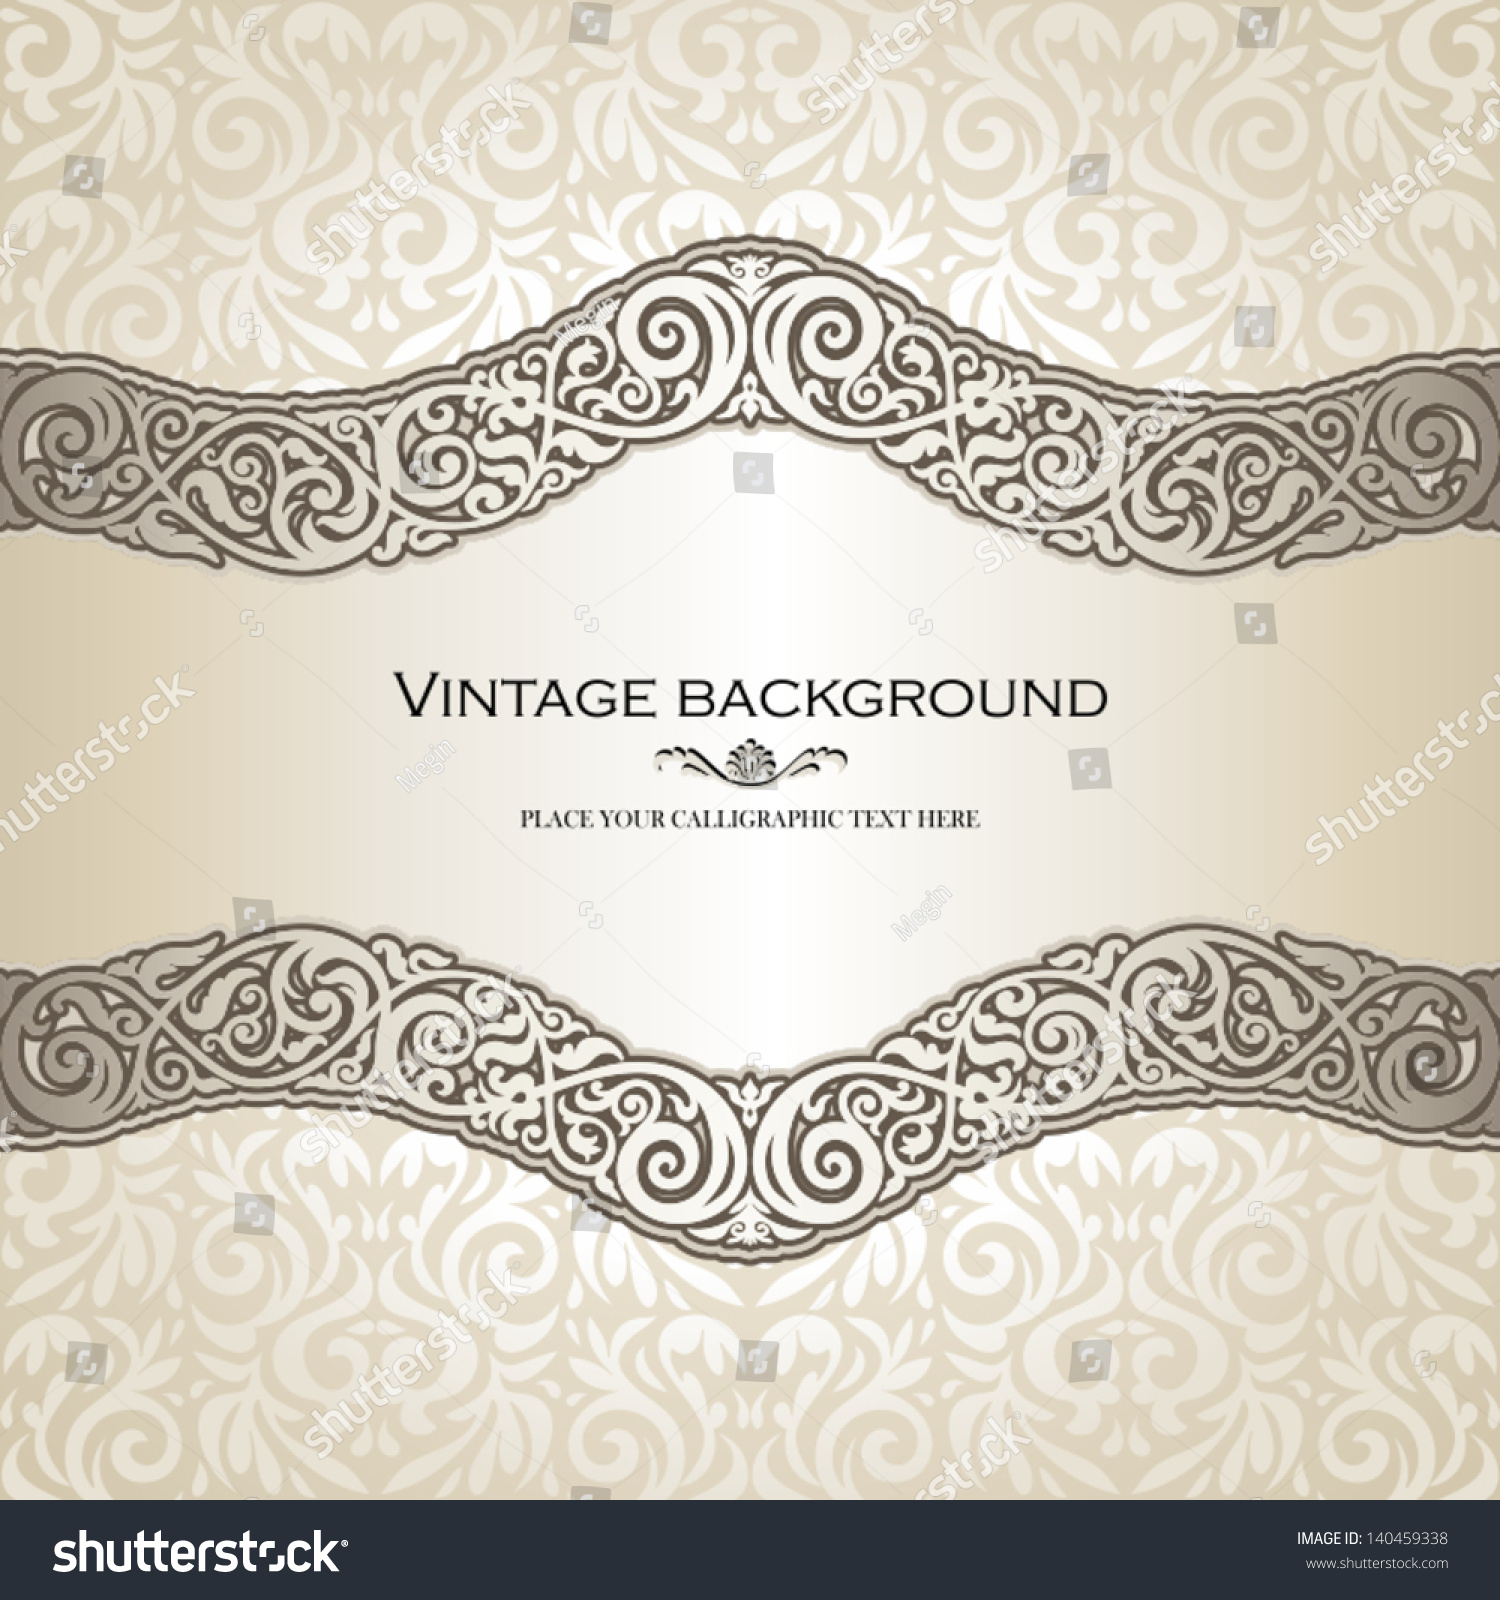 Vintage background ornate baroque pattern vector illustration stock -  Vectors Illustrations Footage Music Vintage Background Elegance Antique Victorian Floral Ornament Baroque Frame Beautiful Invitation